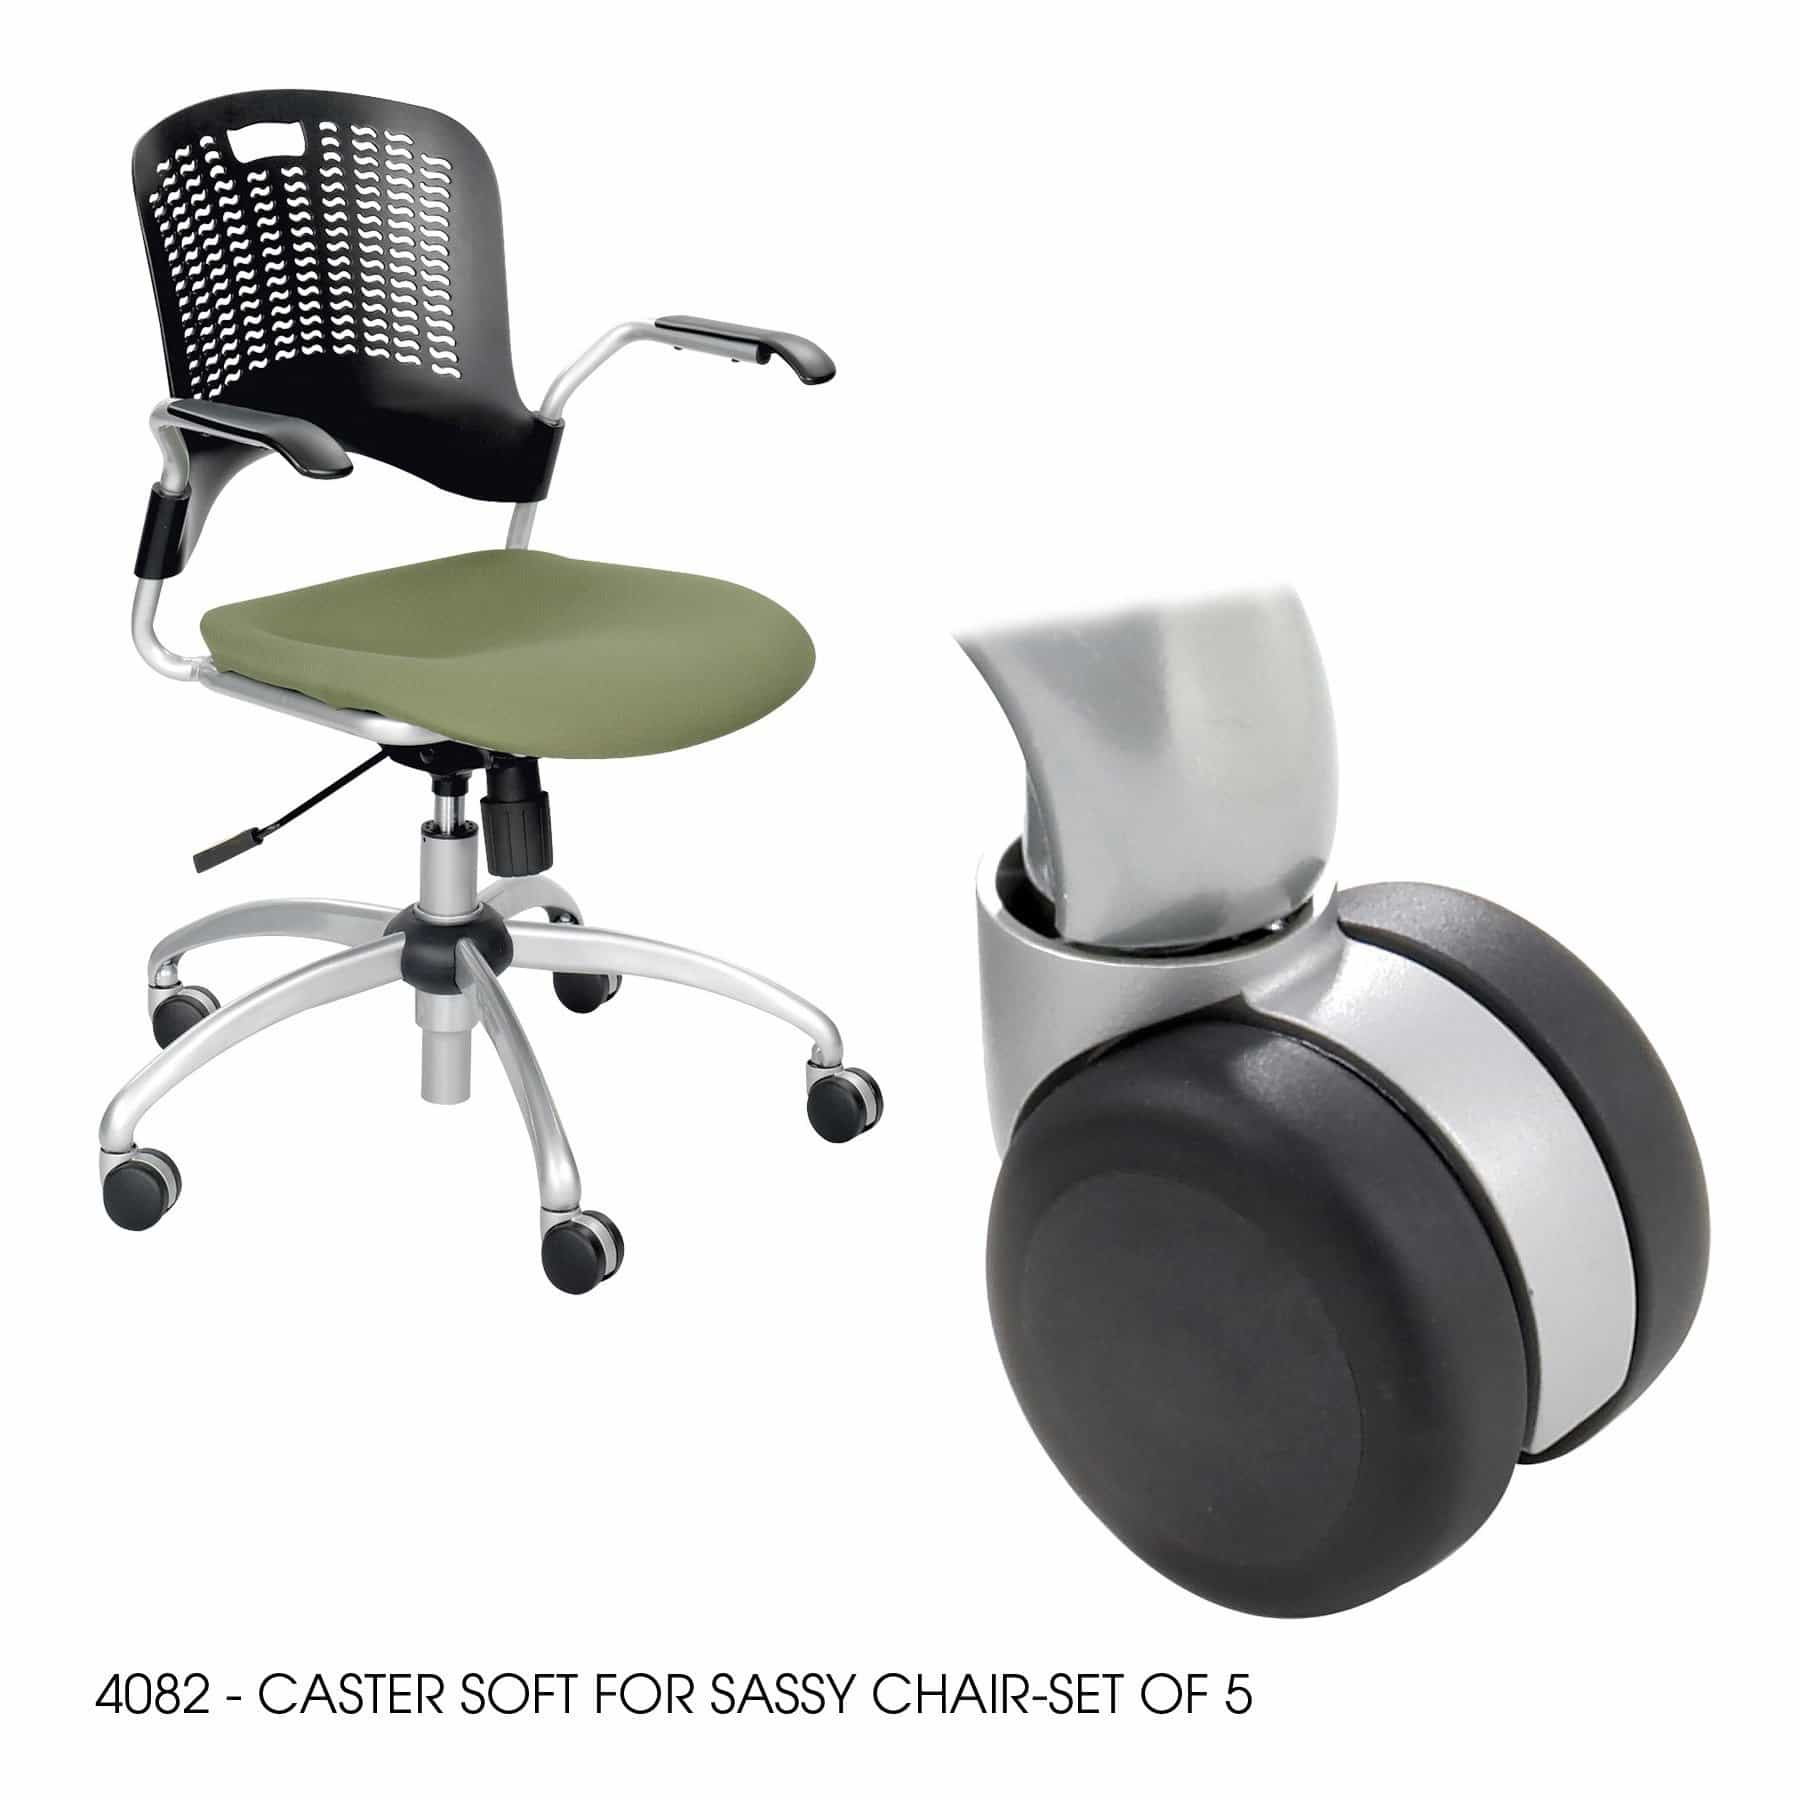 bedinhome - 4082BL Black durable soft caster for Sassy Chair-Set - Safco - Seating Accessories